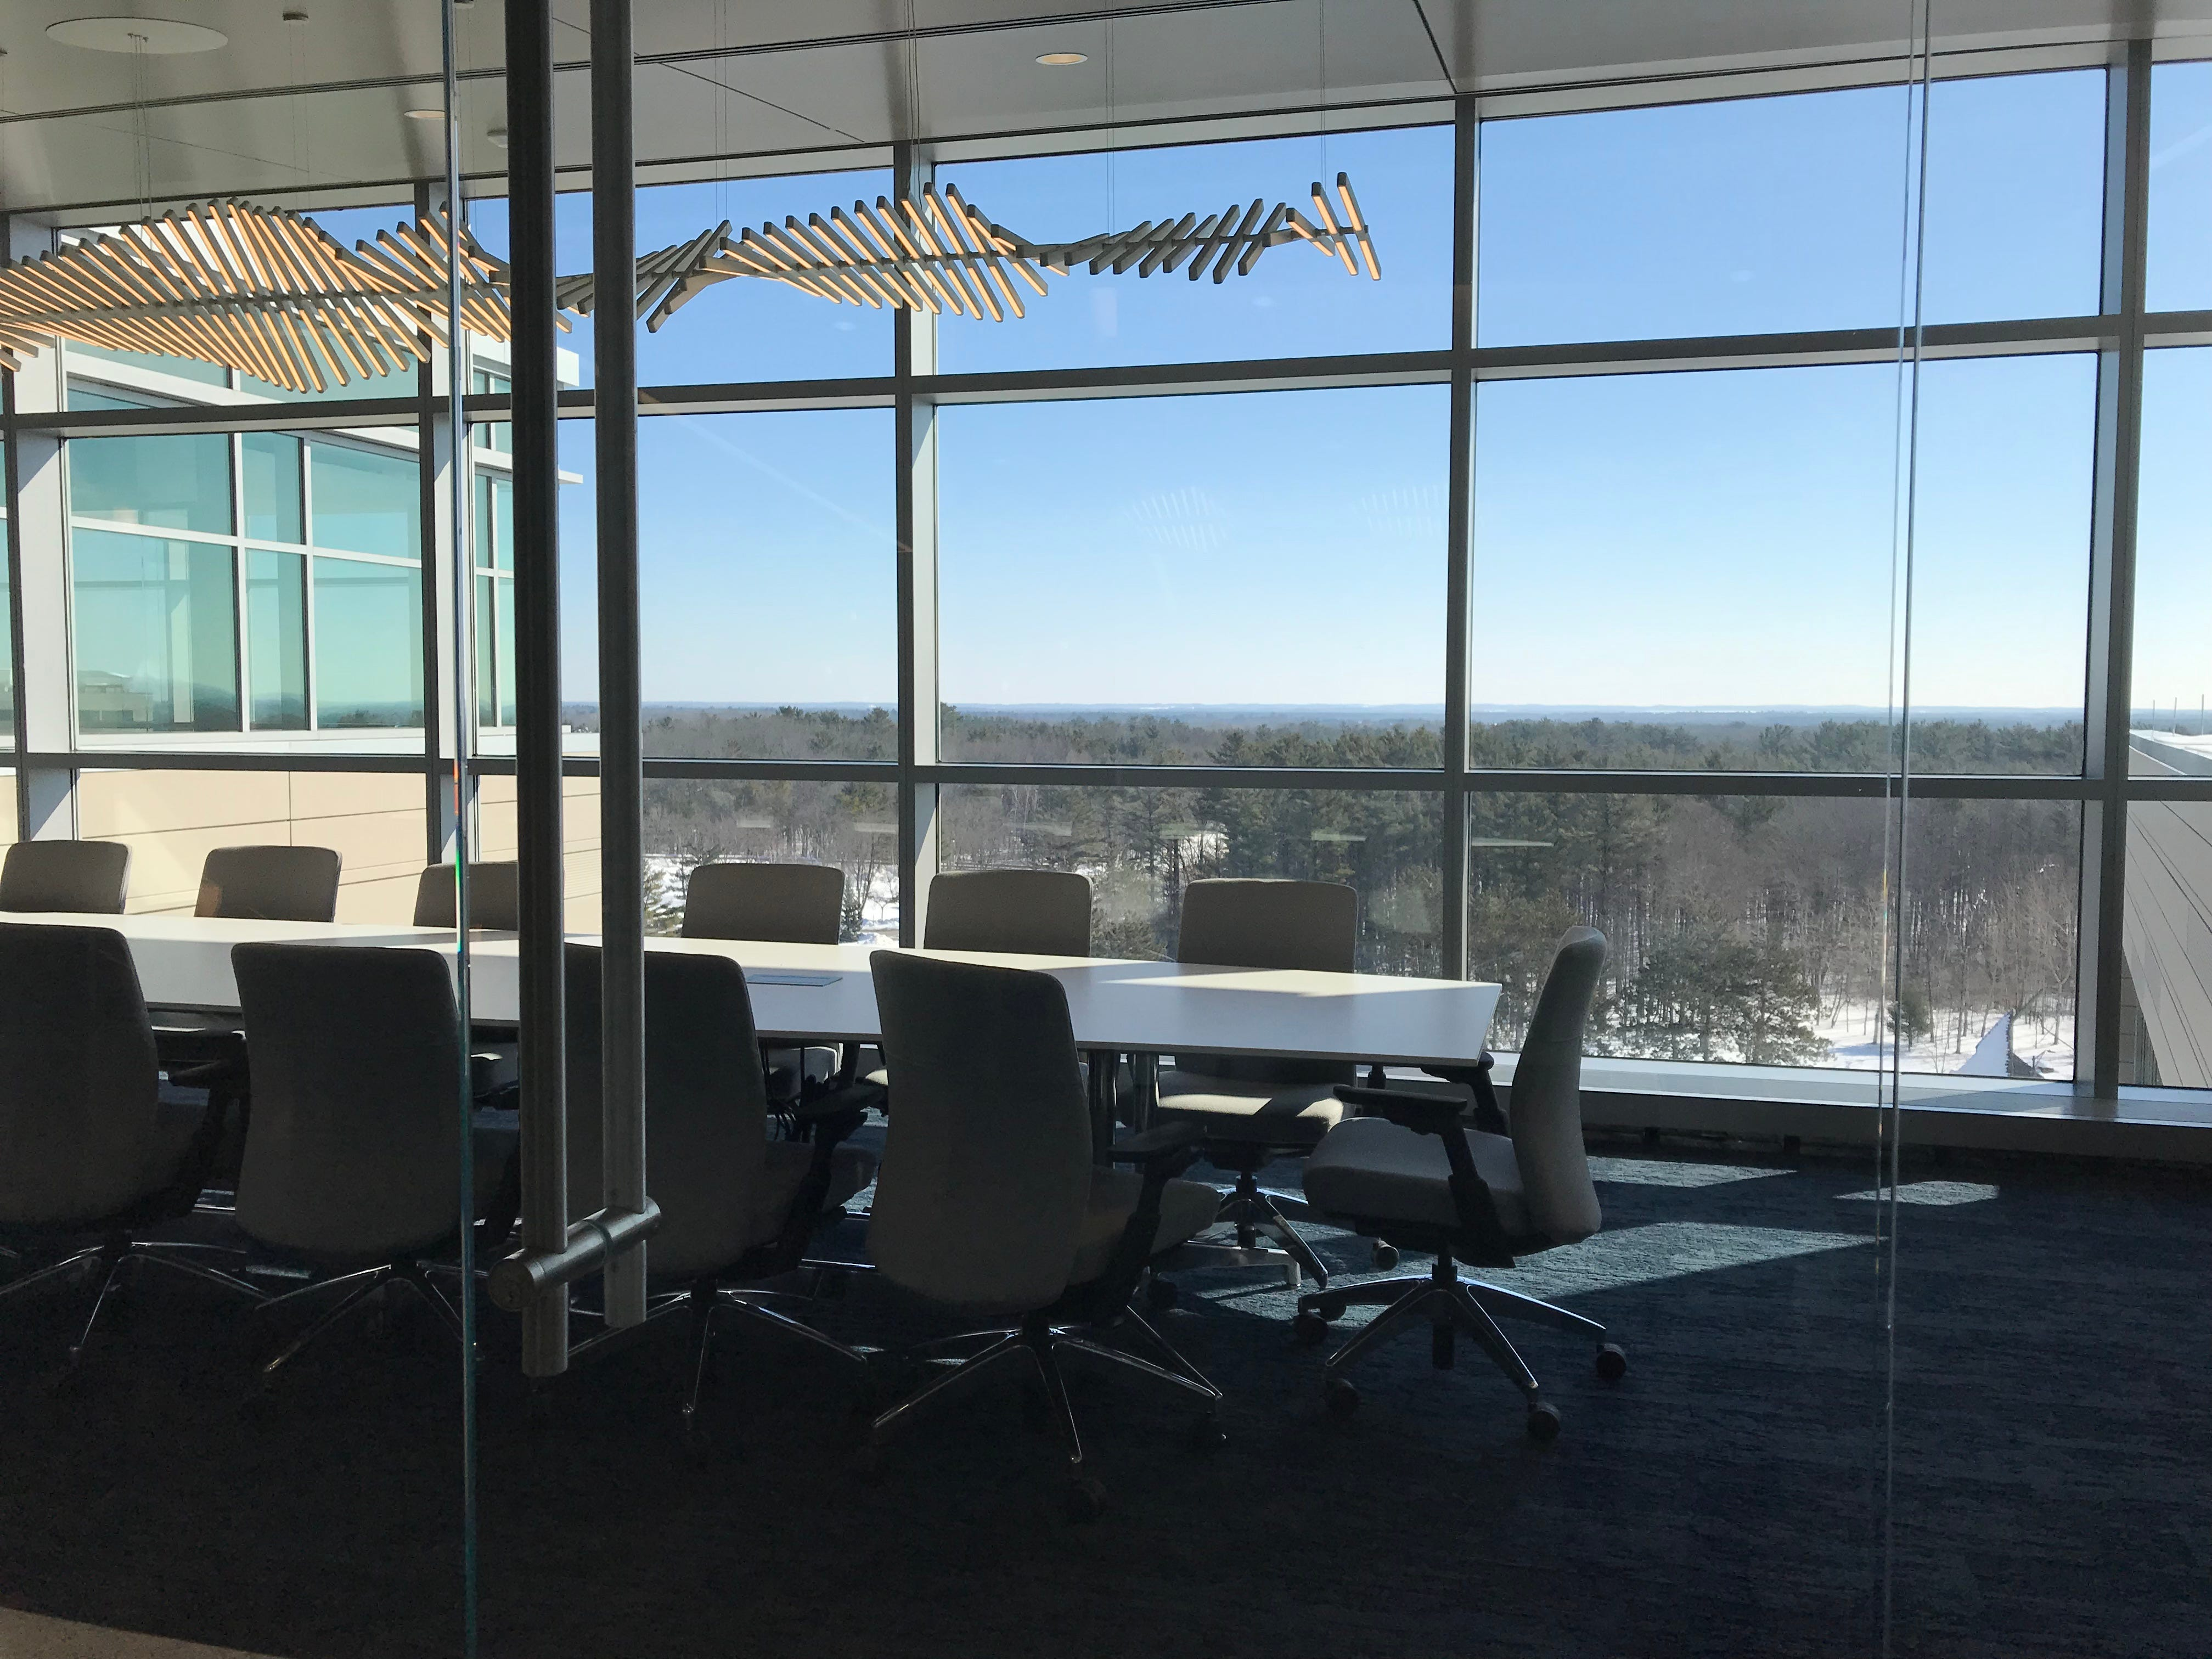 The view from a conference room in the Sentry Insurance building at 1501 North Point Drive in Stevens Point.